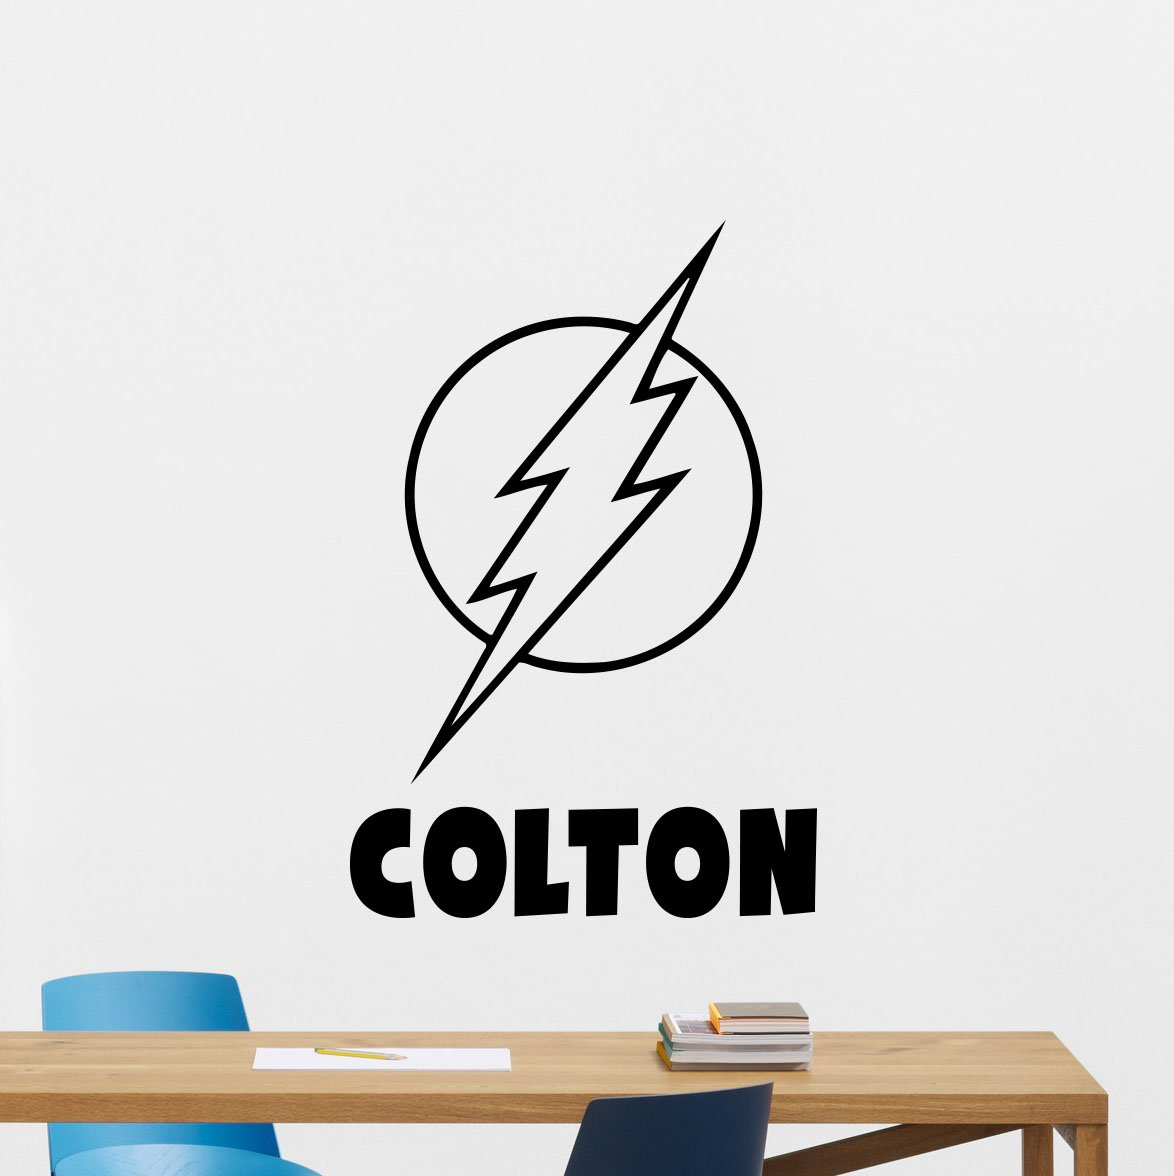 Personalized flash wall decal custom name superhero comics cartoon poster stencil wall vinyl sticker kids teen boy room nursery bedroom wall art decor mural